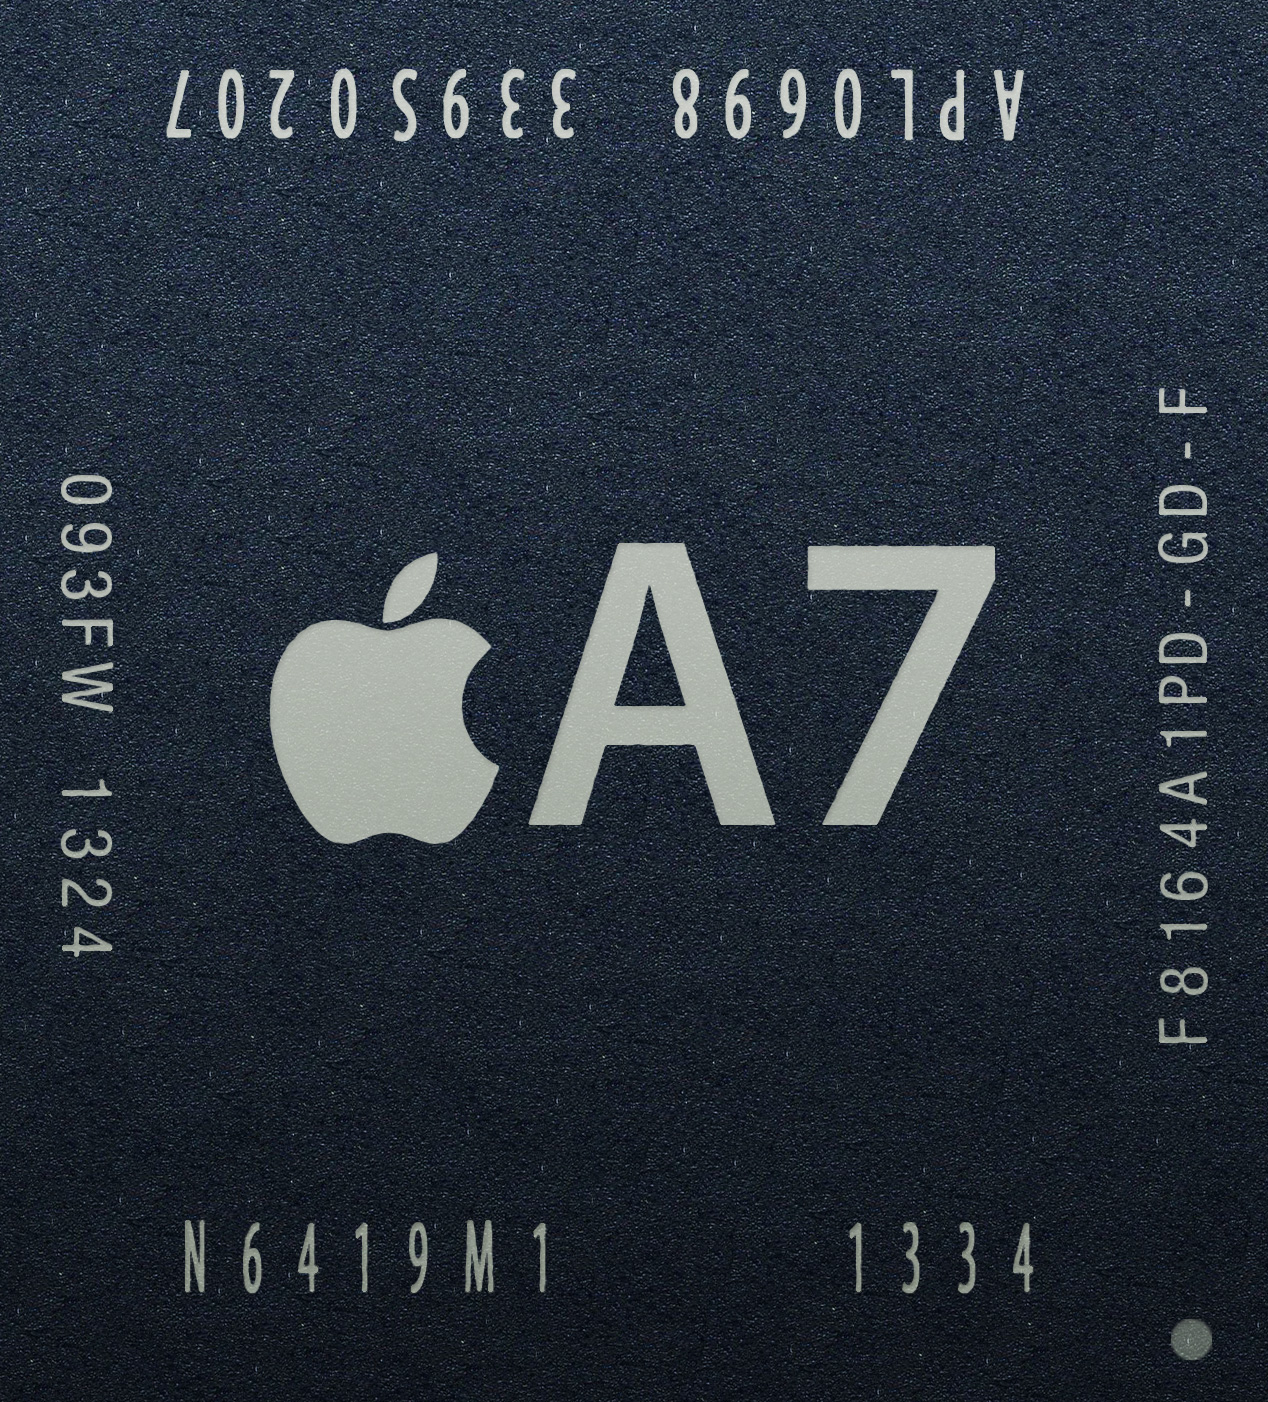 Apple A7 - Wikipedia